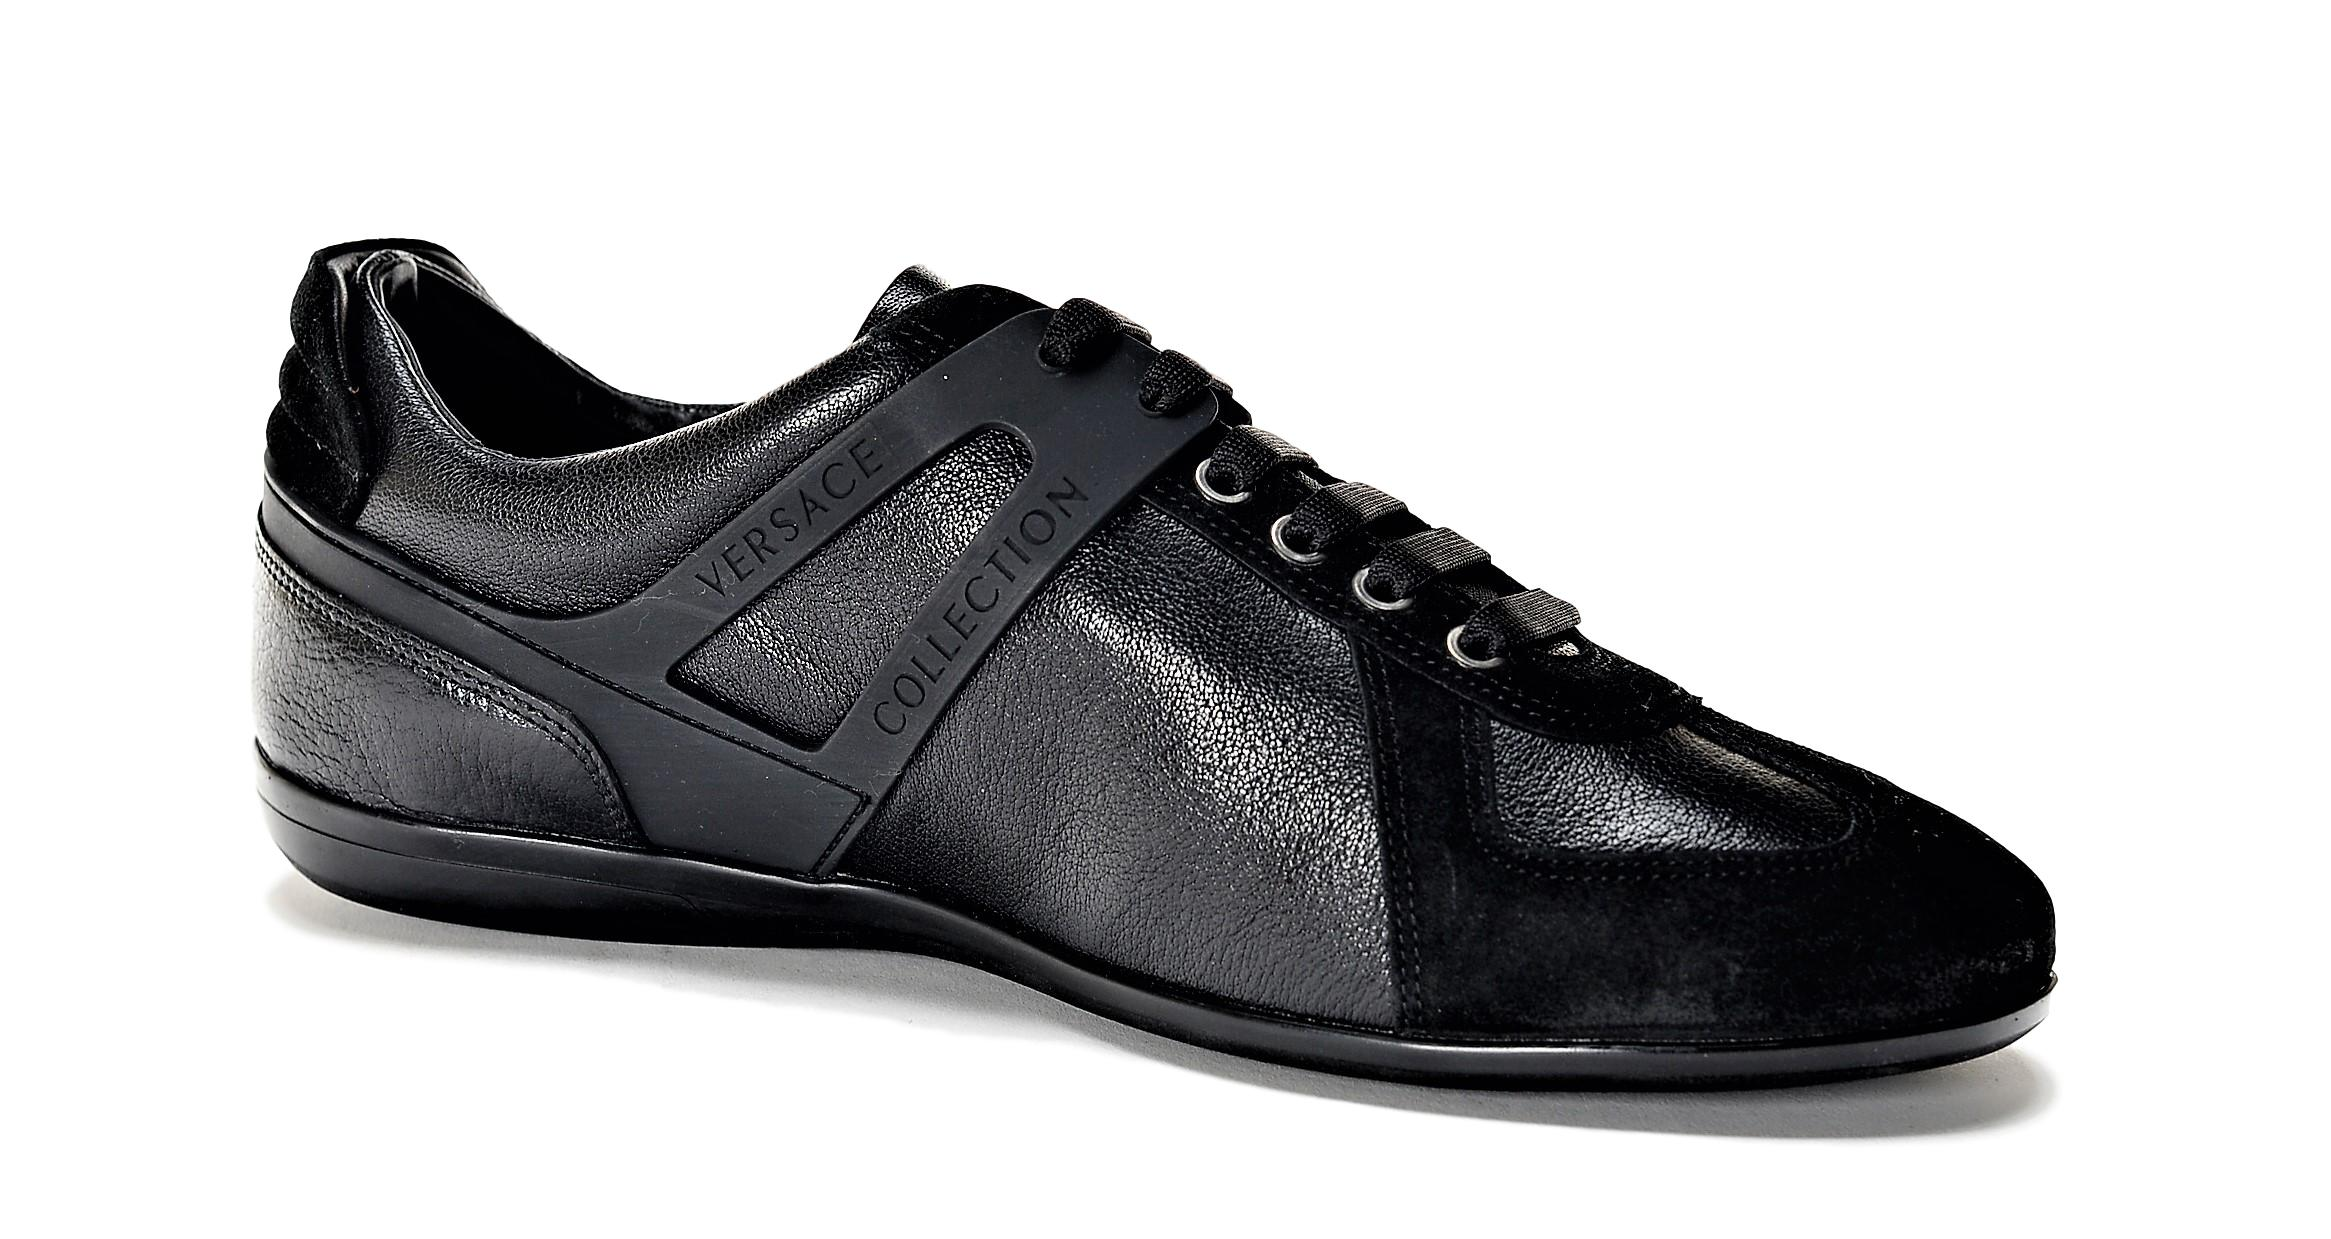 Details about Versace Collection Men's Leather Suede Low Top Sneakers Shoes